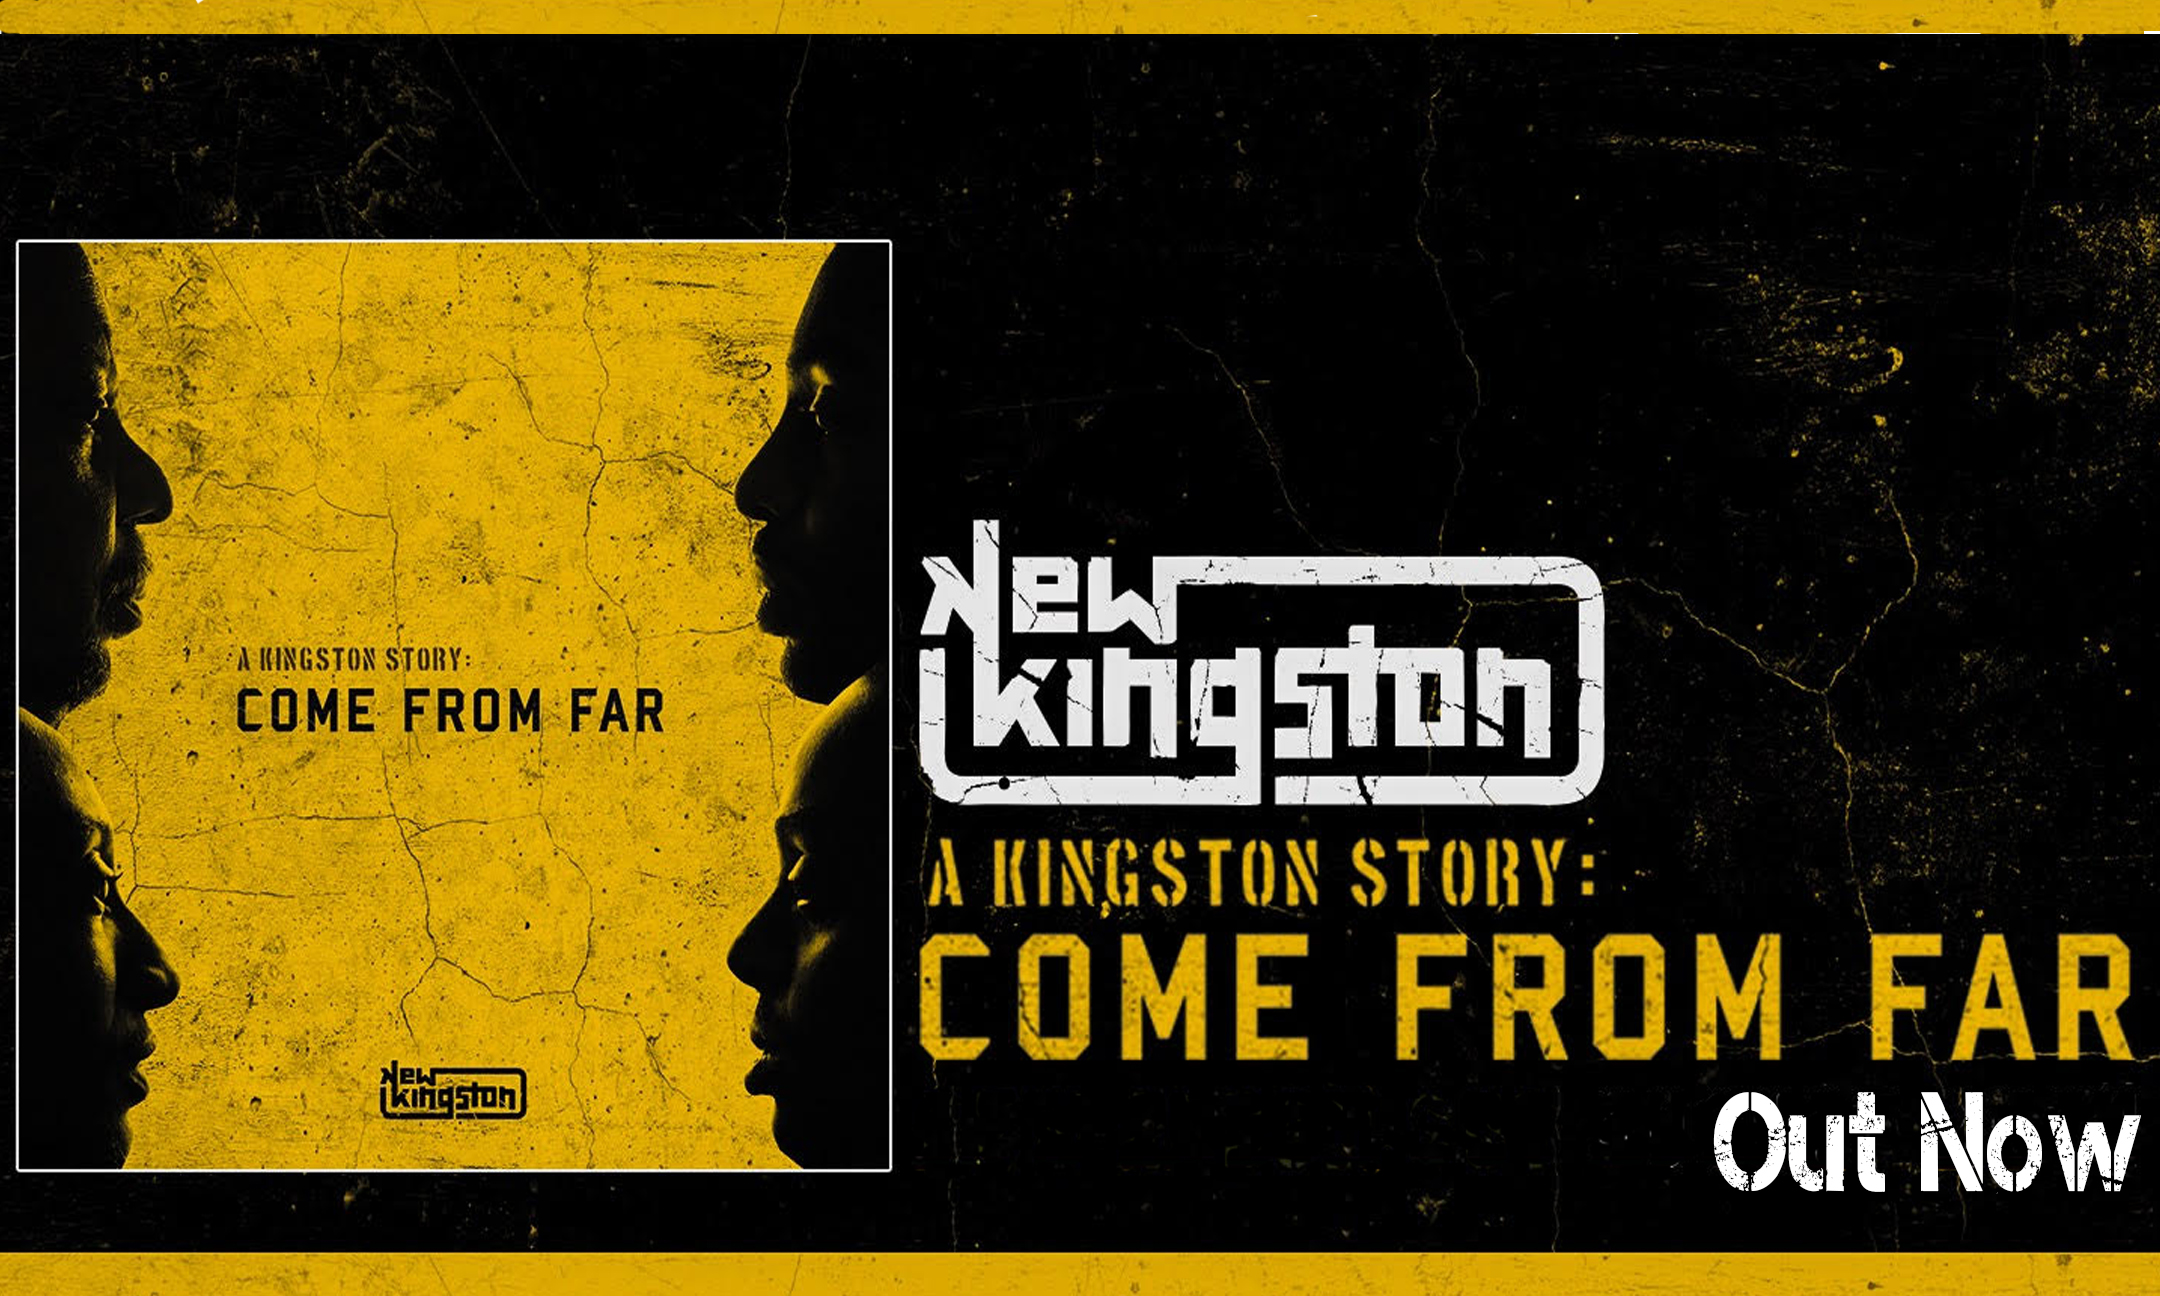 New Kingston release A Kingston Story: Come From Far #NewAlbum